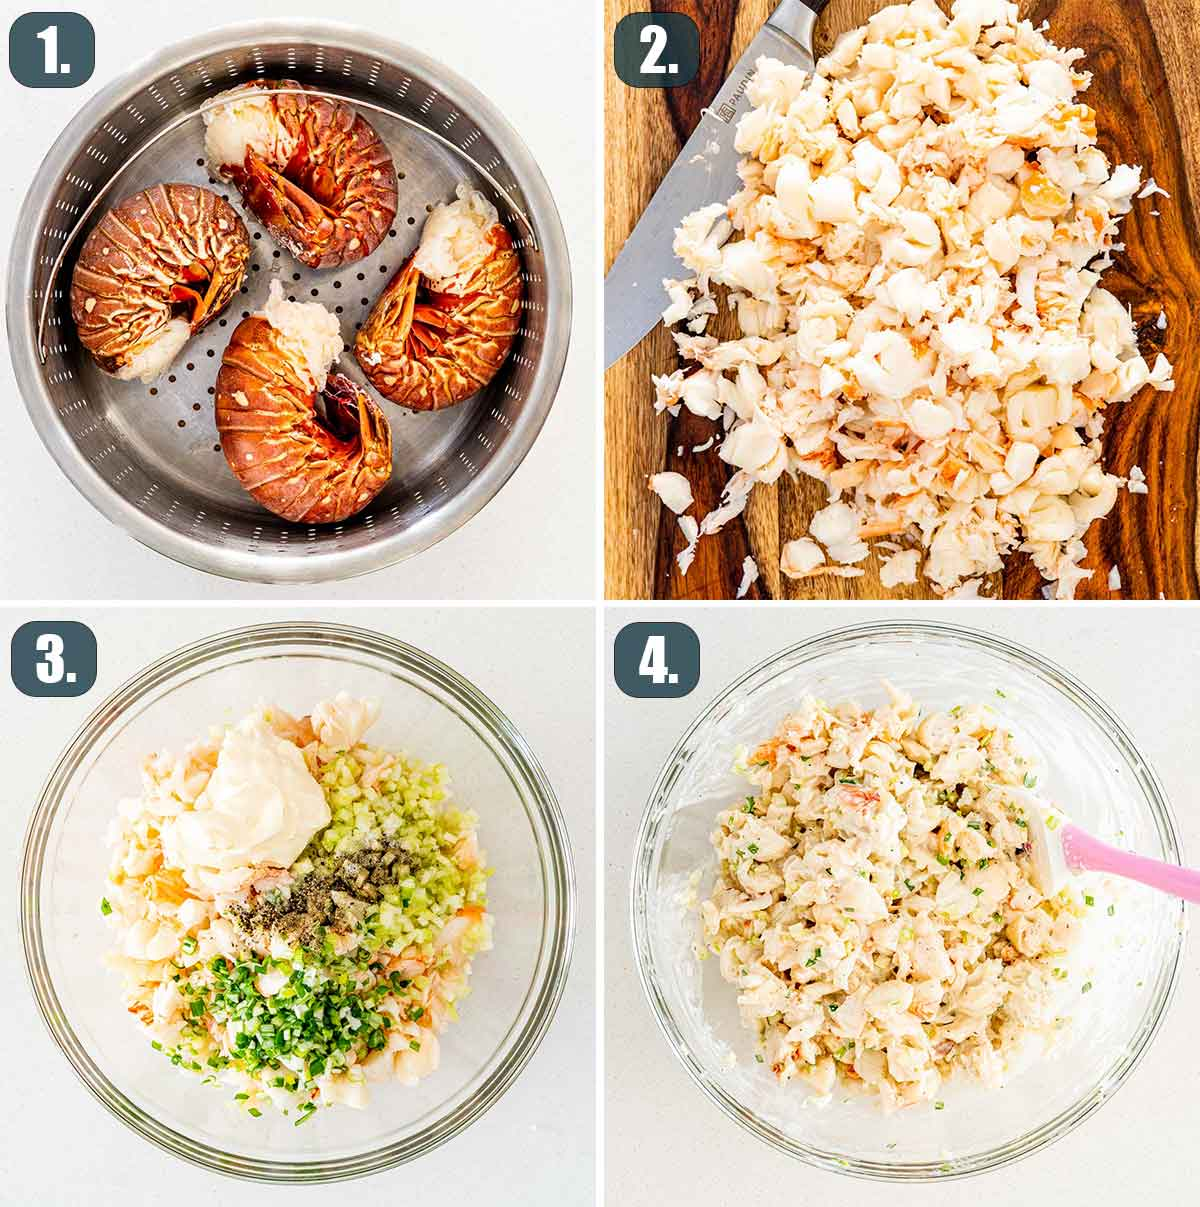 process shots showing how to make the filling for lobster rolls.